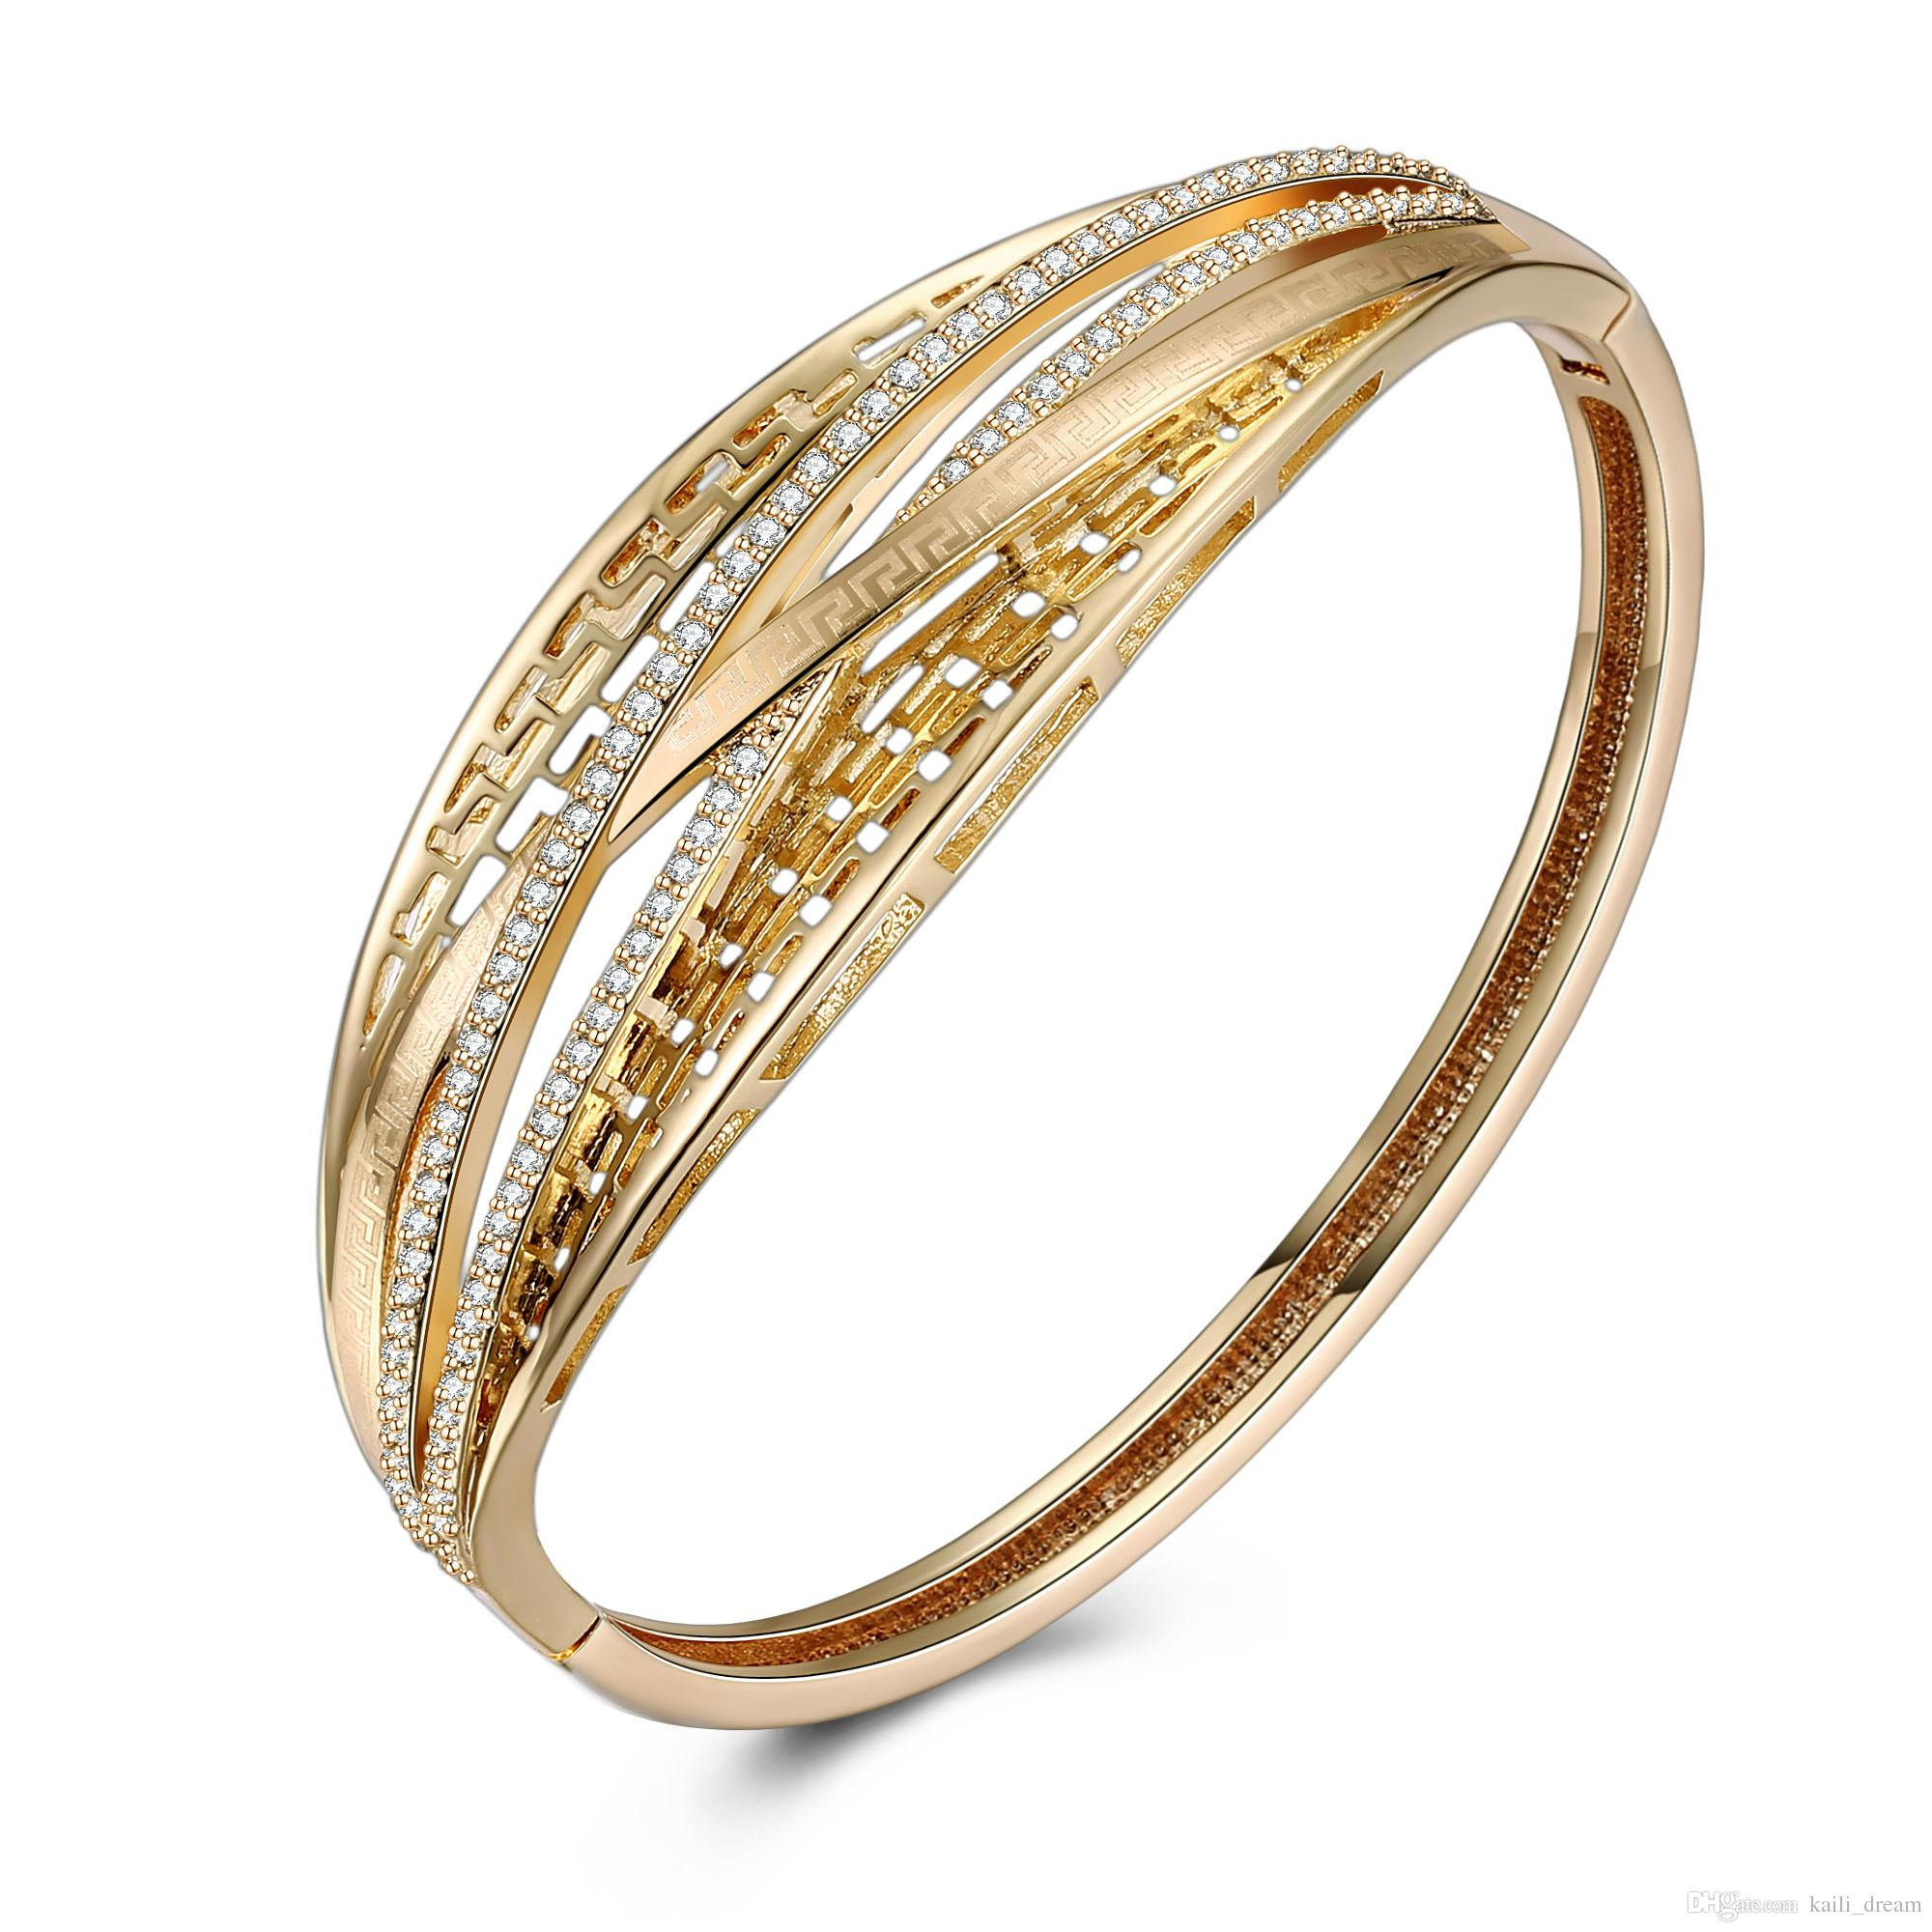 white view bangle coin bangles bracelet yellow jewellery gold lyst roberto jewelry diamond fullscreen cheval